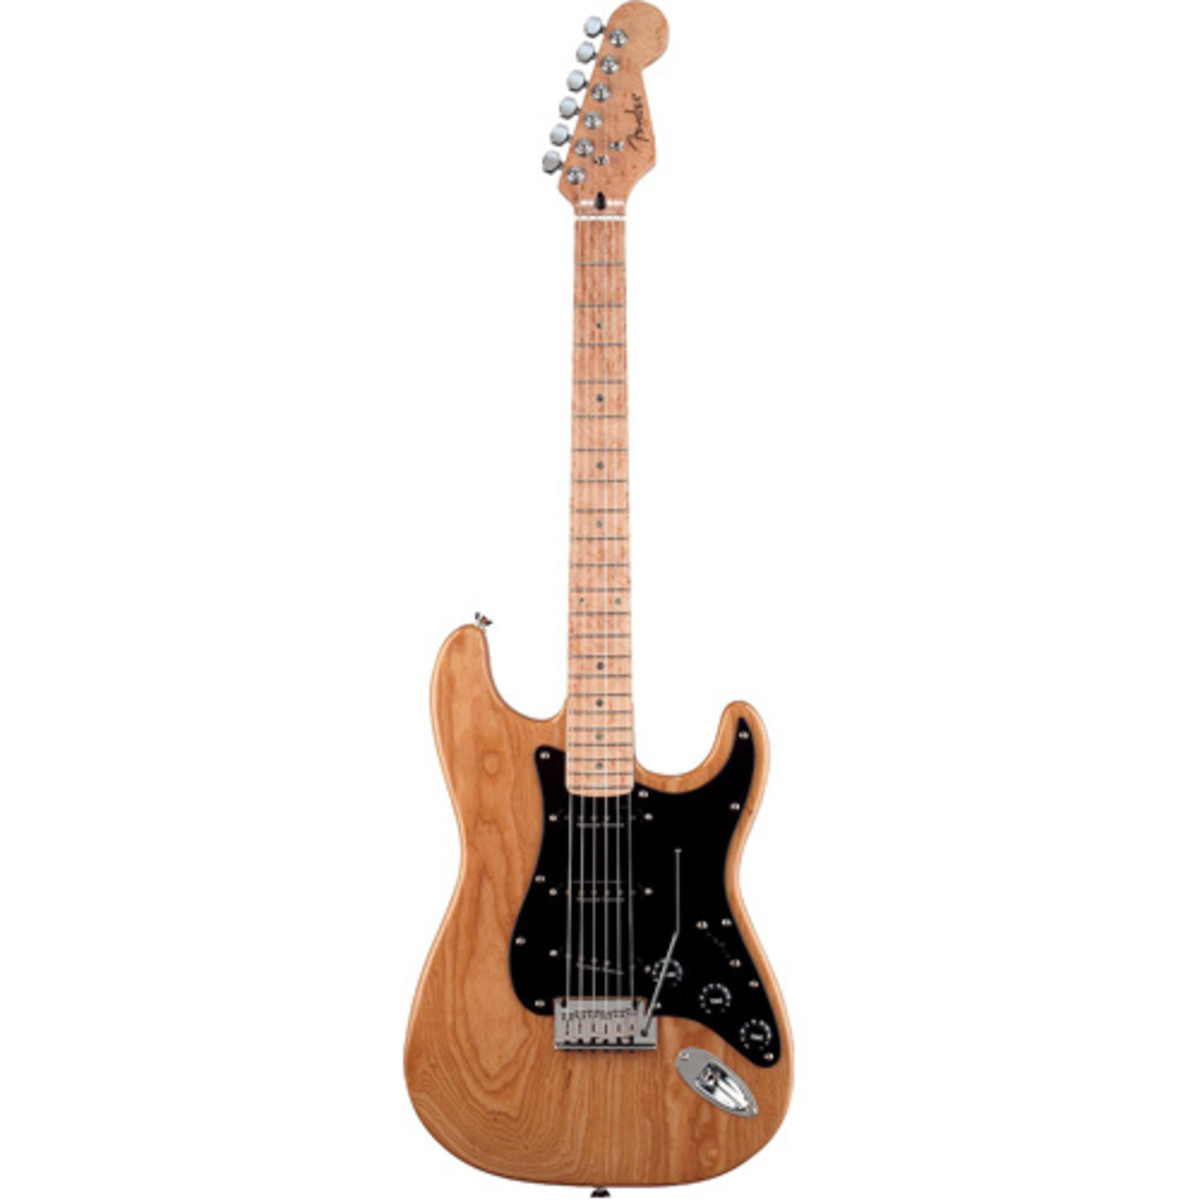 Special Edition Lite Ash Stratocaster Electric Guitar with